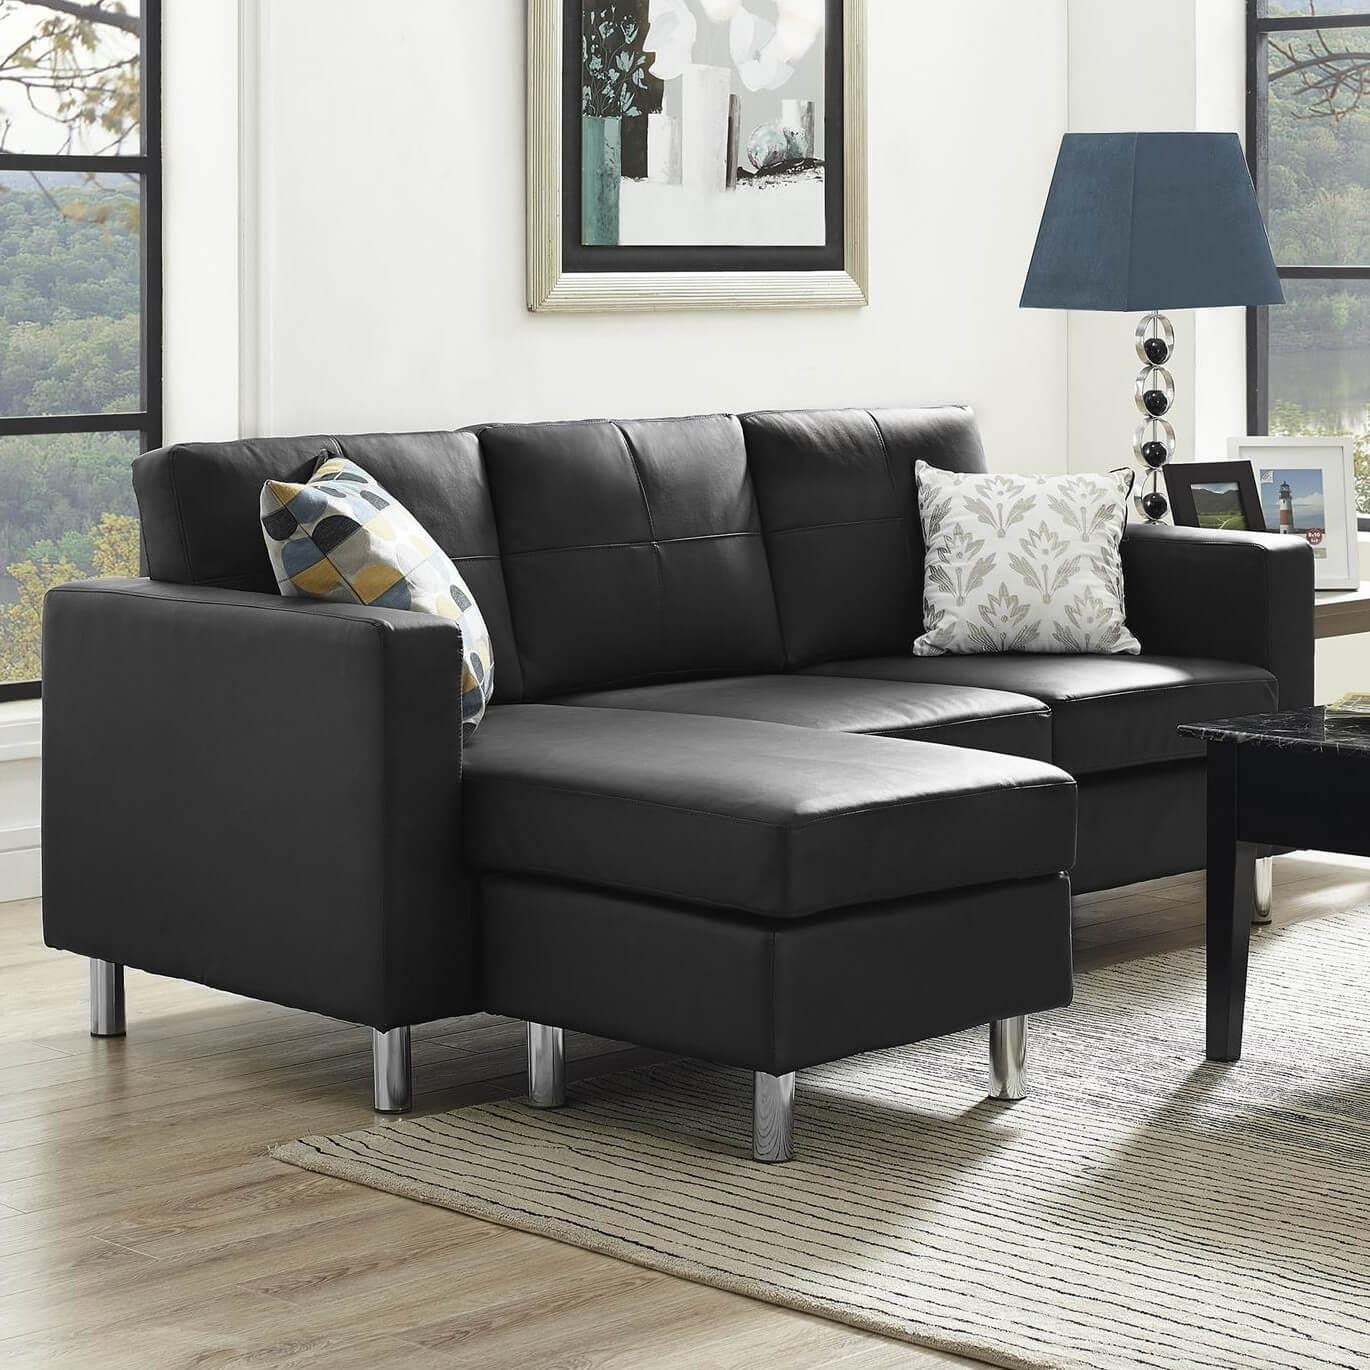 13 Sectional Sofas Under $500 (Several Styles) within Modern Sectional Sofas For Small Spaces